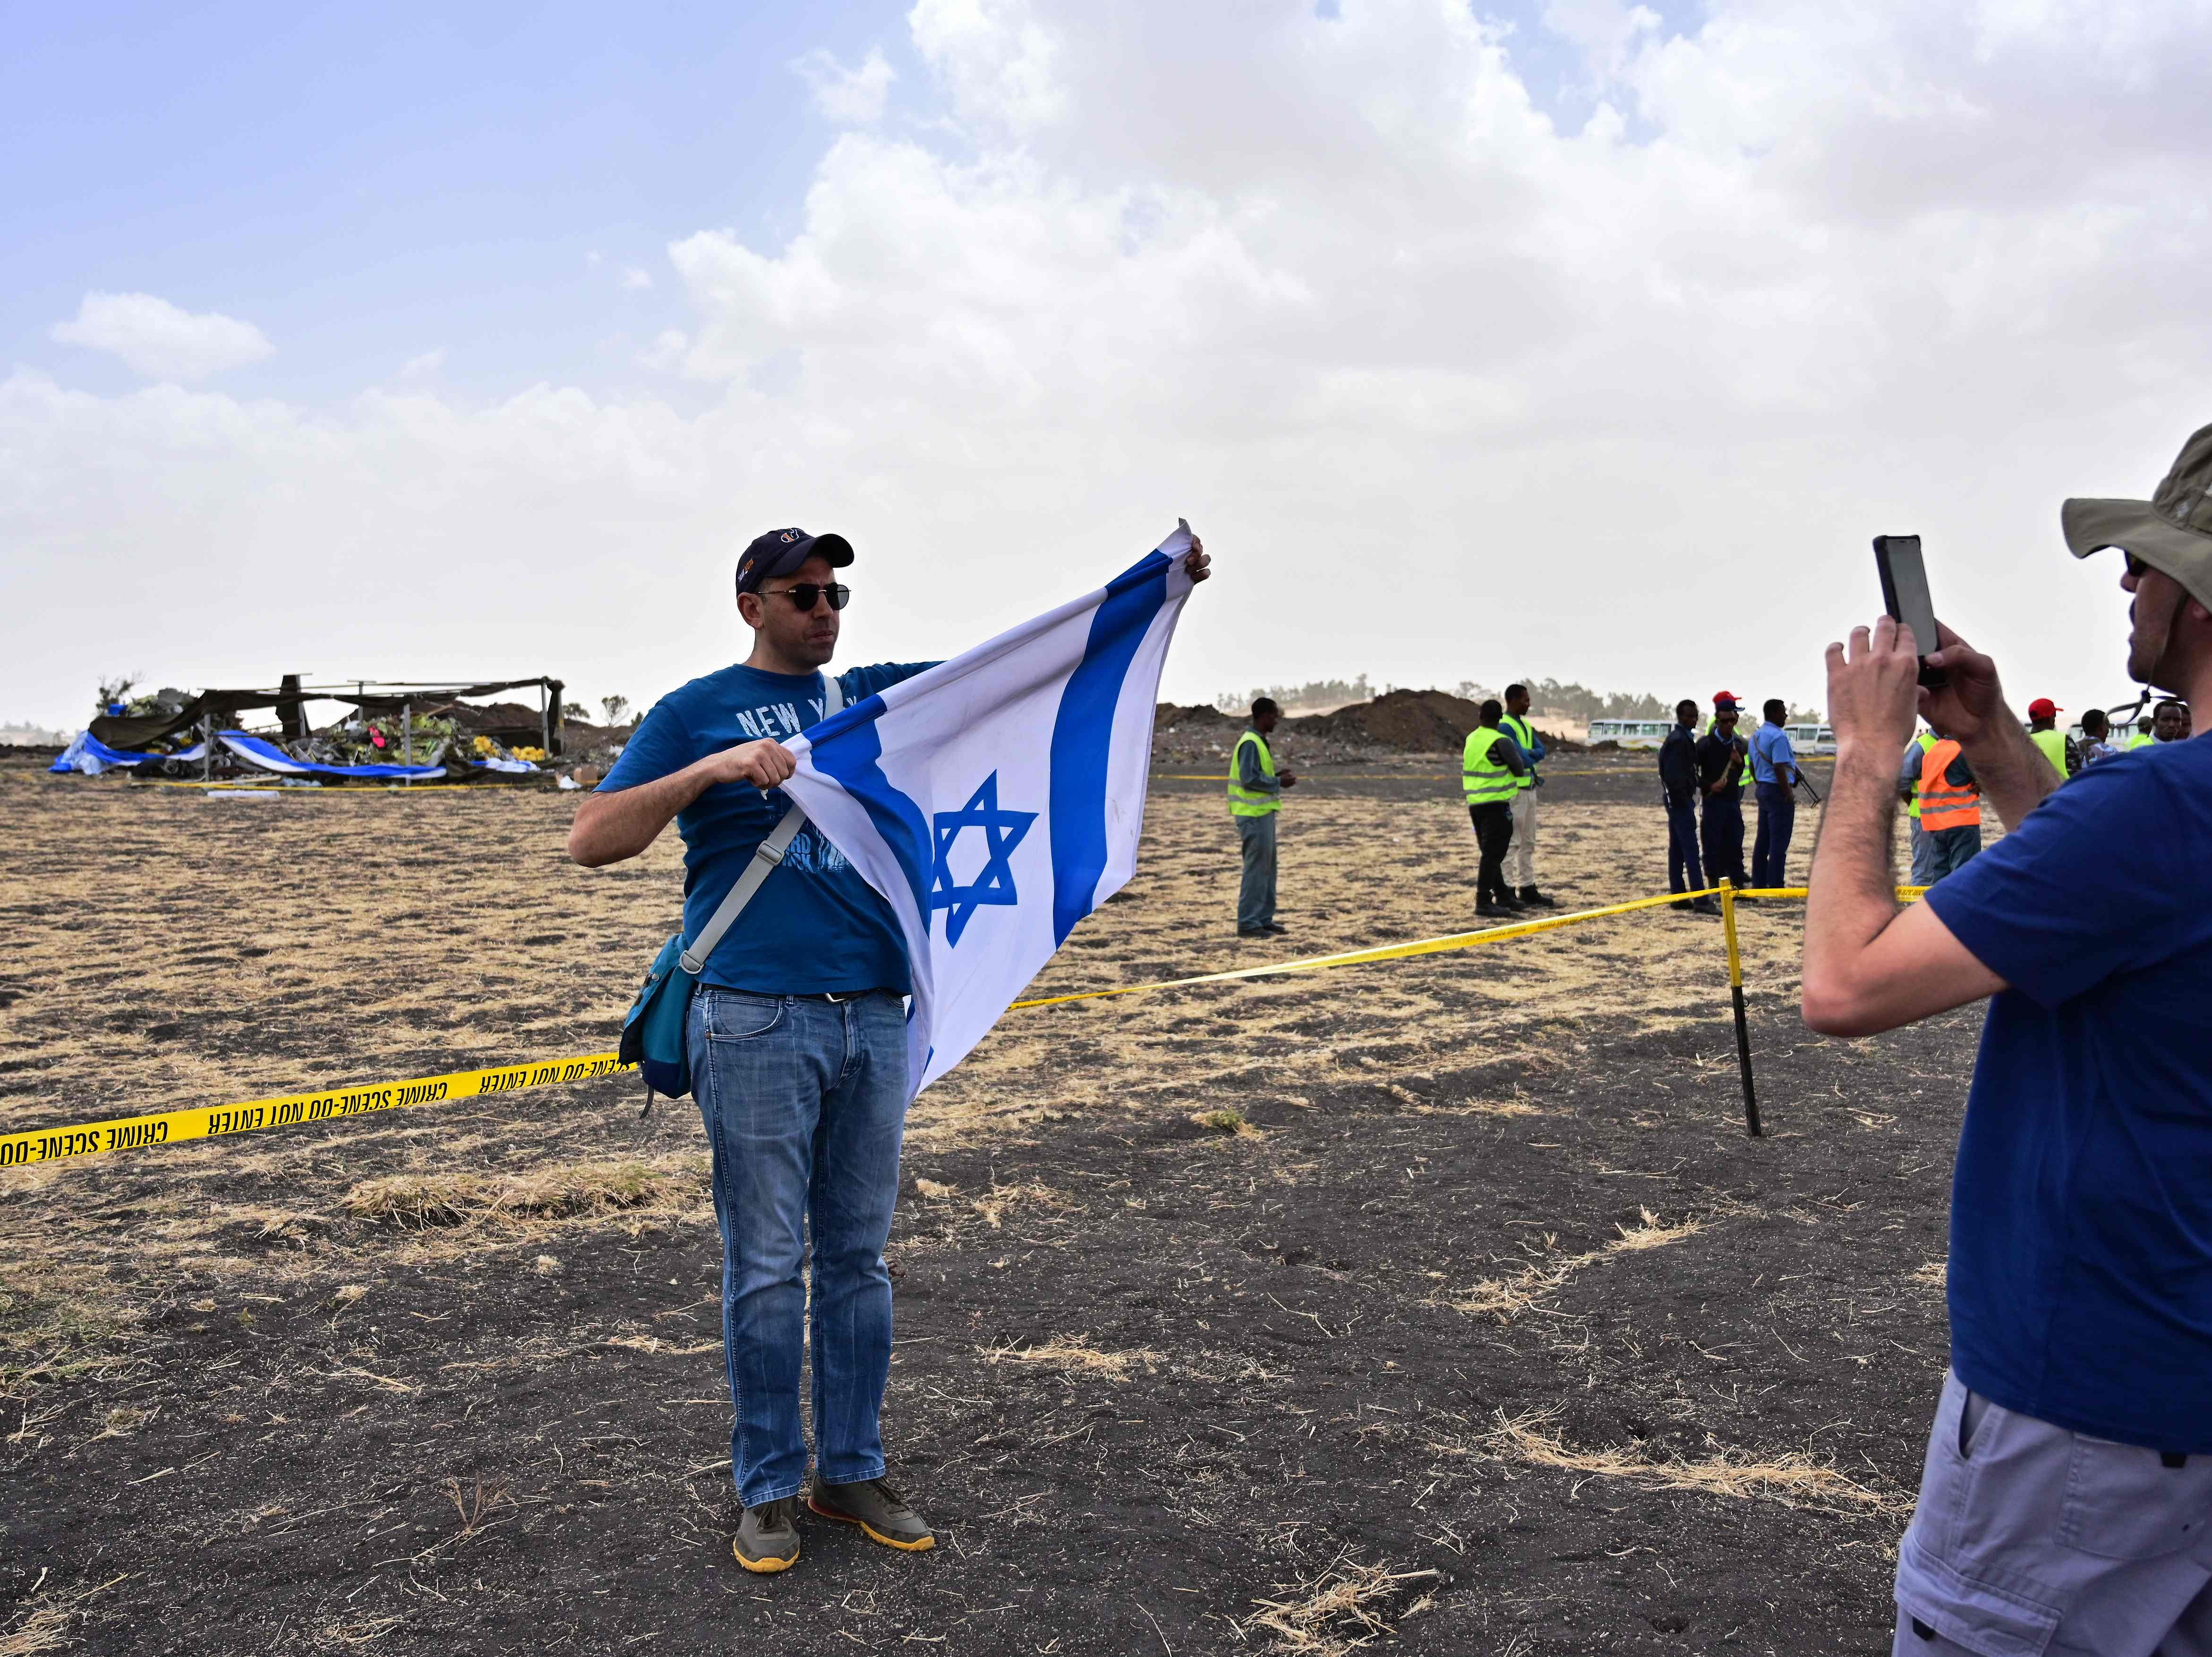 Two brothers of the Israeli victim Shimon Daniely take a photo with the Israeli flag at the crash site of the Ethiopian Airlines operated Boeing 737 MAX aircraft, at Hama Quntushele village in Oromia region, on March 14, 2019.